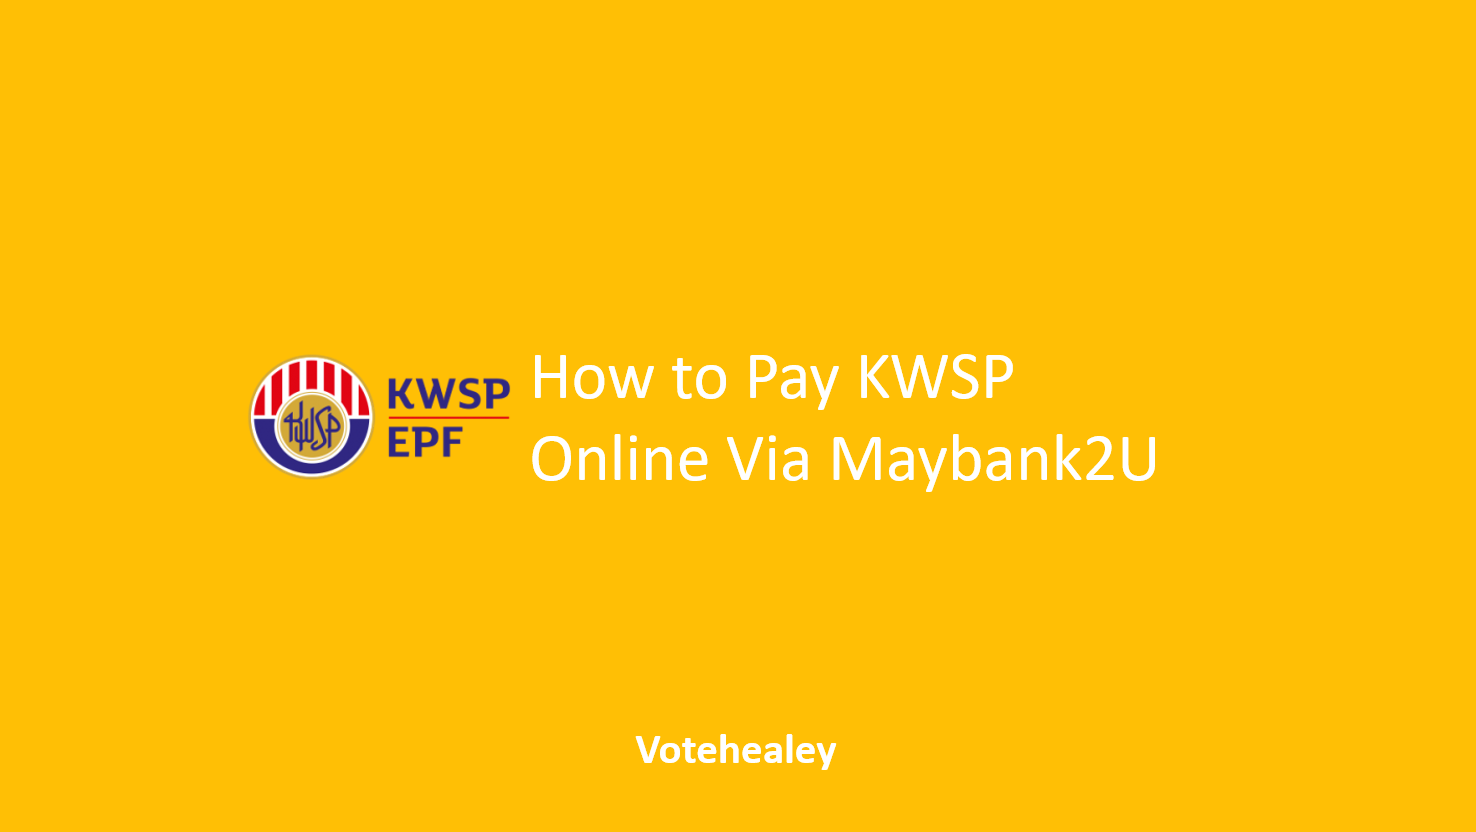 How to Pay KWSP Online Via Maybank2U